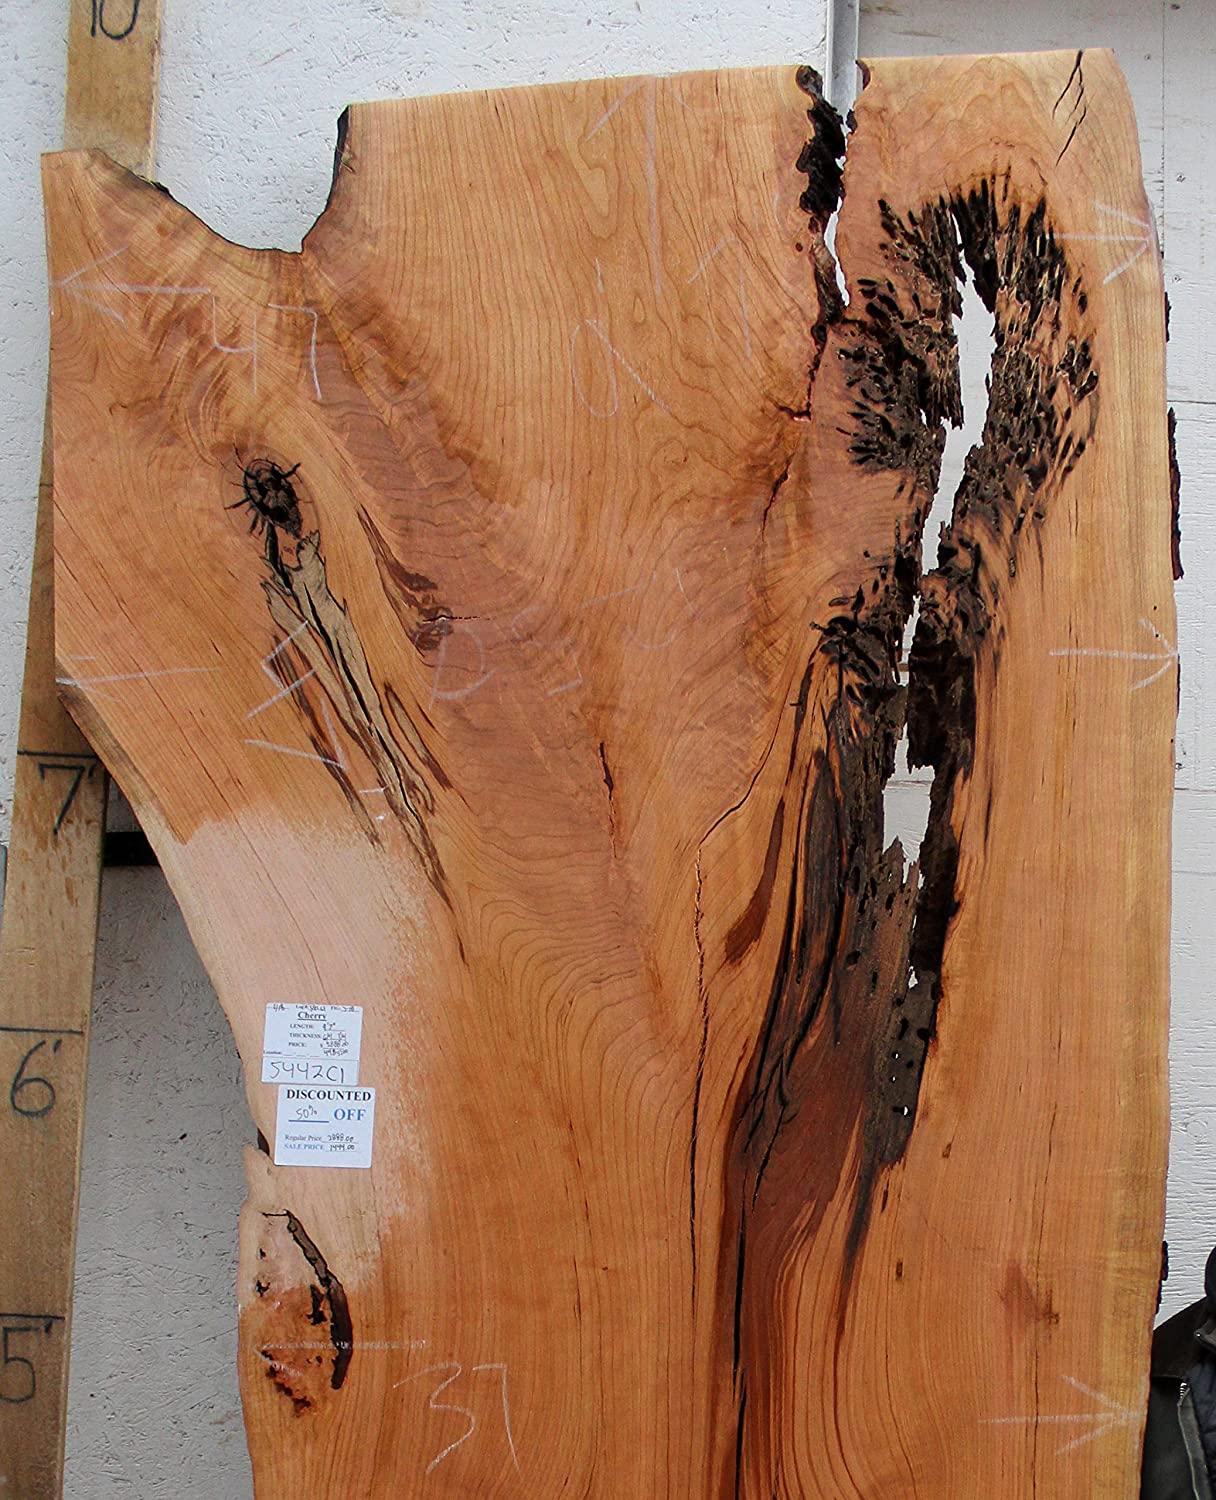 Live Edge Dining Conference Table Natural Cherry Raw Wood Slab Custom  Furniture Unique Rustic Kitchen Island Unfinished Wide Lumber 5442c1:  Amazon.com: ...